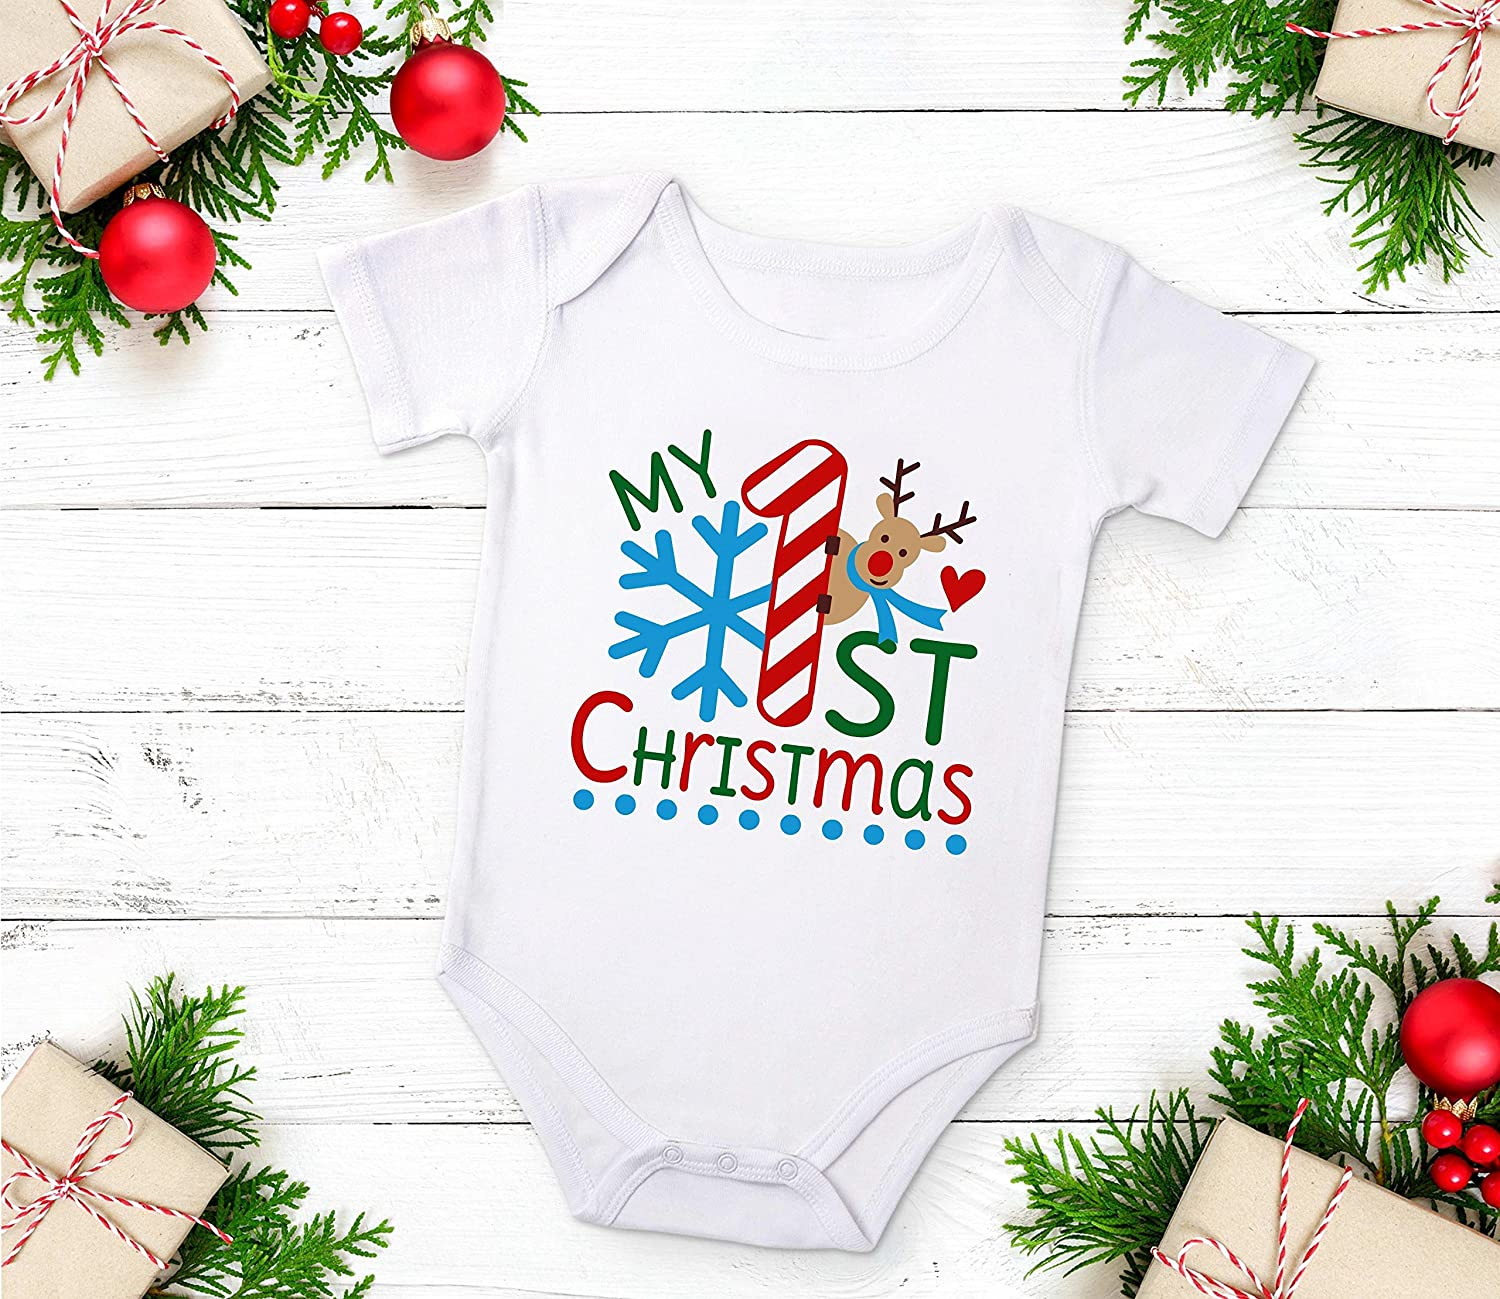 Baby First Christmas Bodysuit, Baby's First Christmas 2017, Christmas Baby, Long or Short Sleeve Baby' s First Christmas 2017